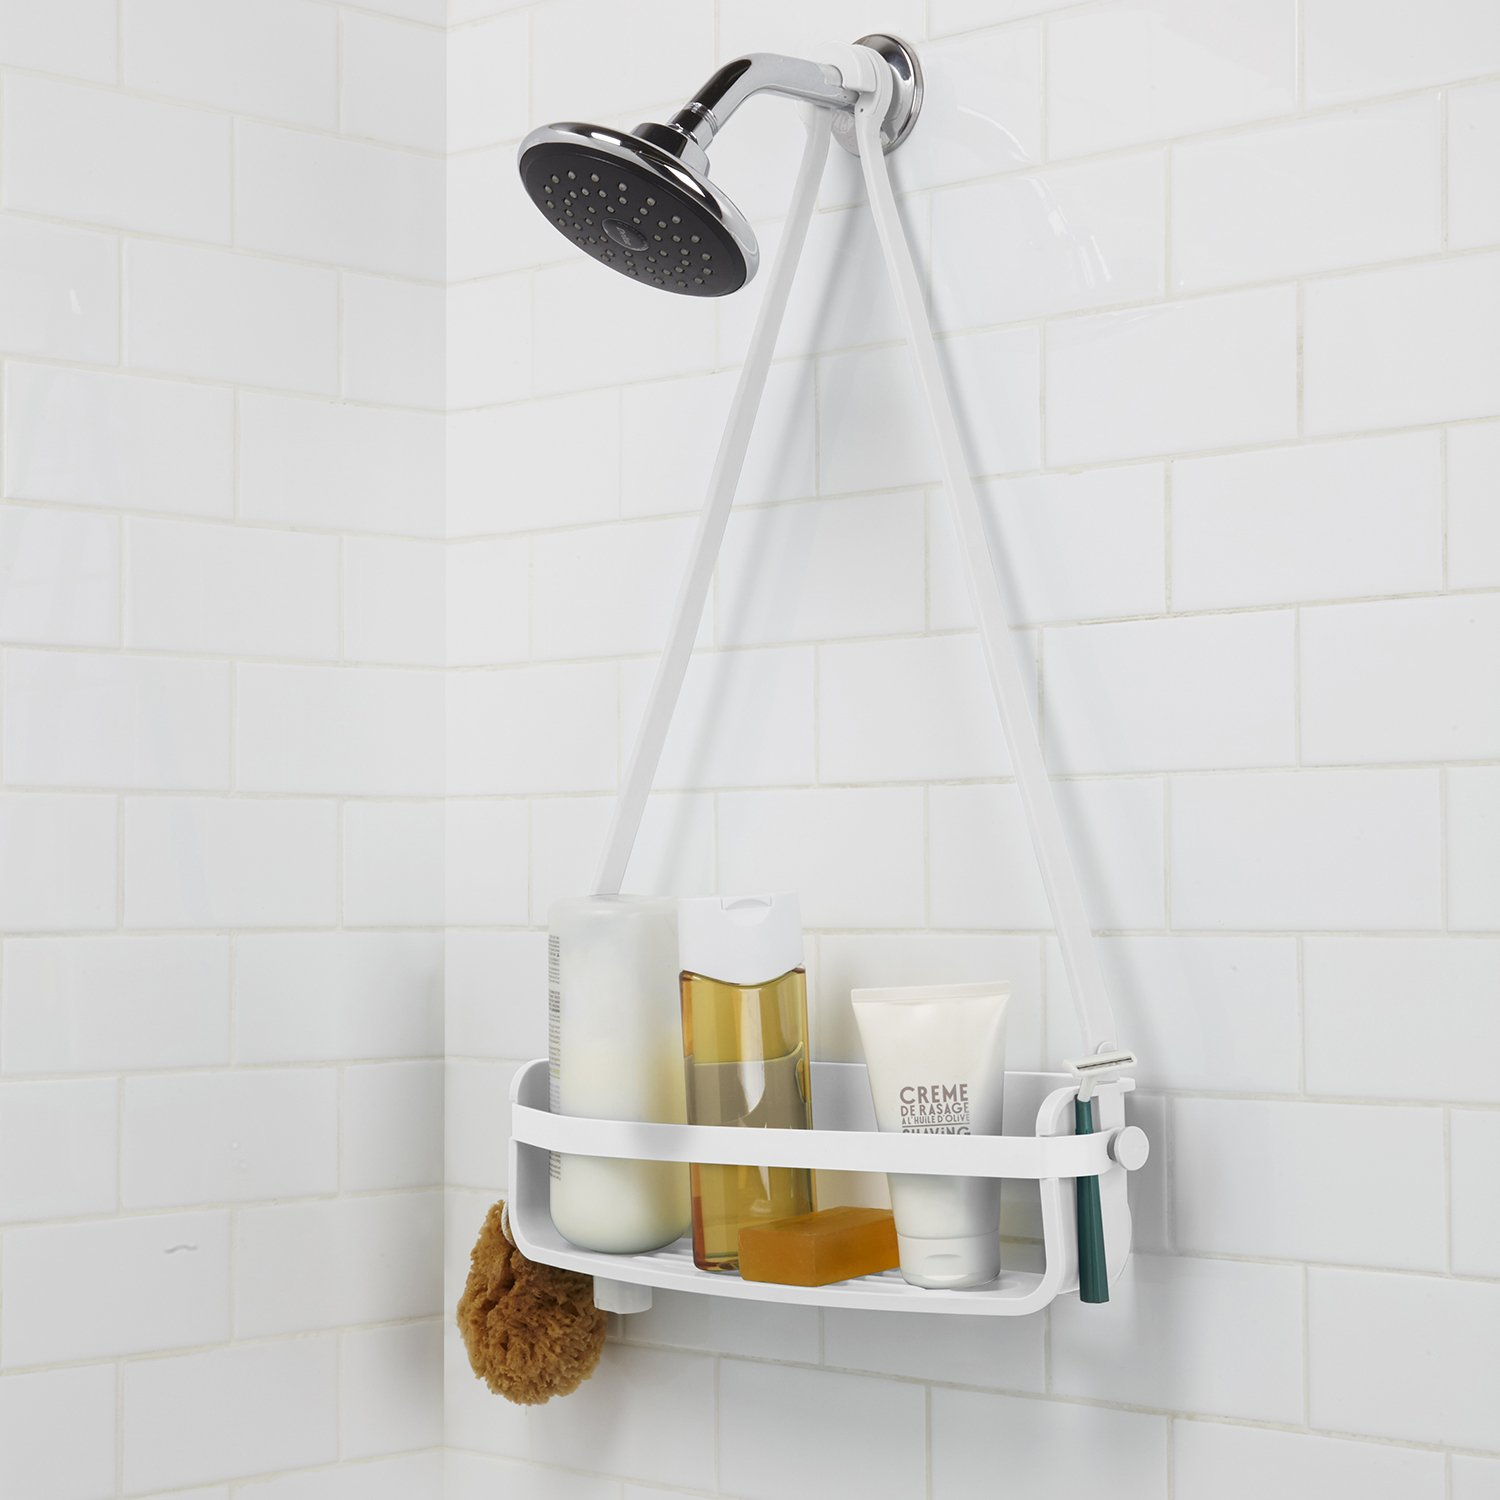 Amazon.com: Umbra Flex Single Shower Caddy, White: Home & Kitchen